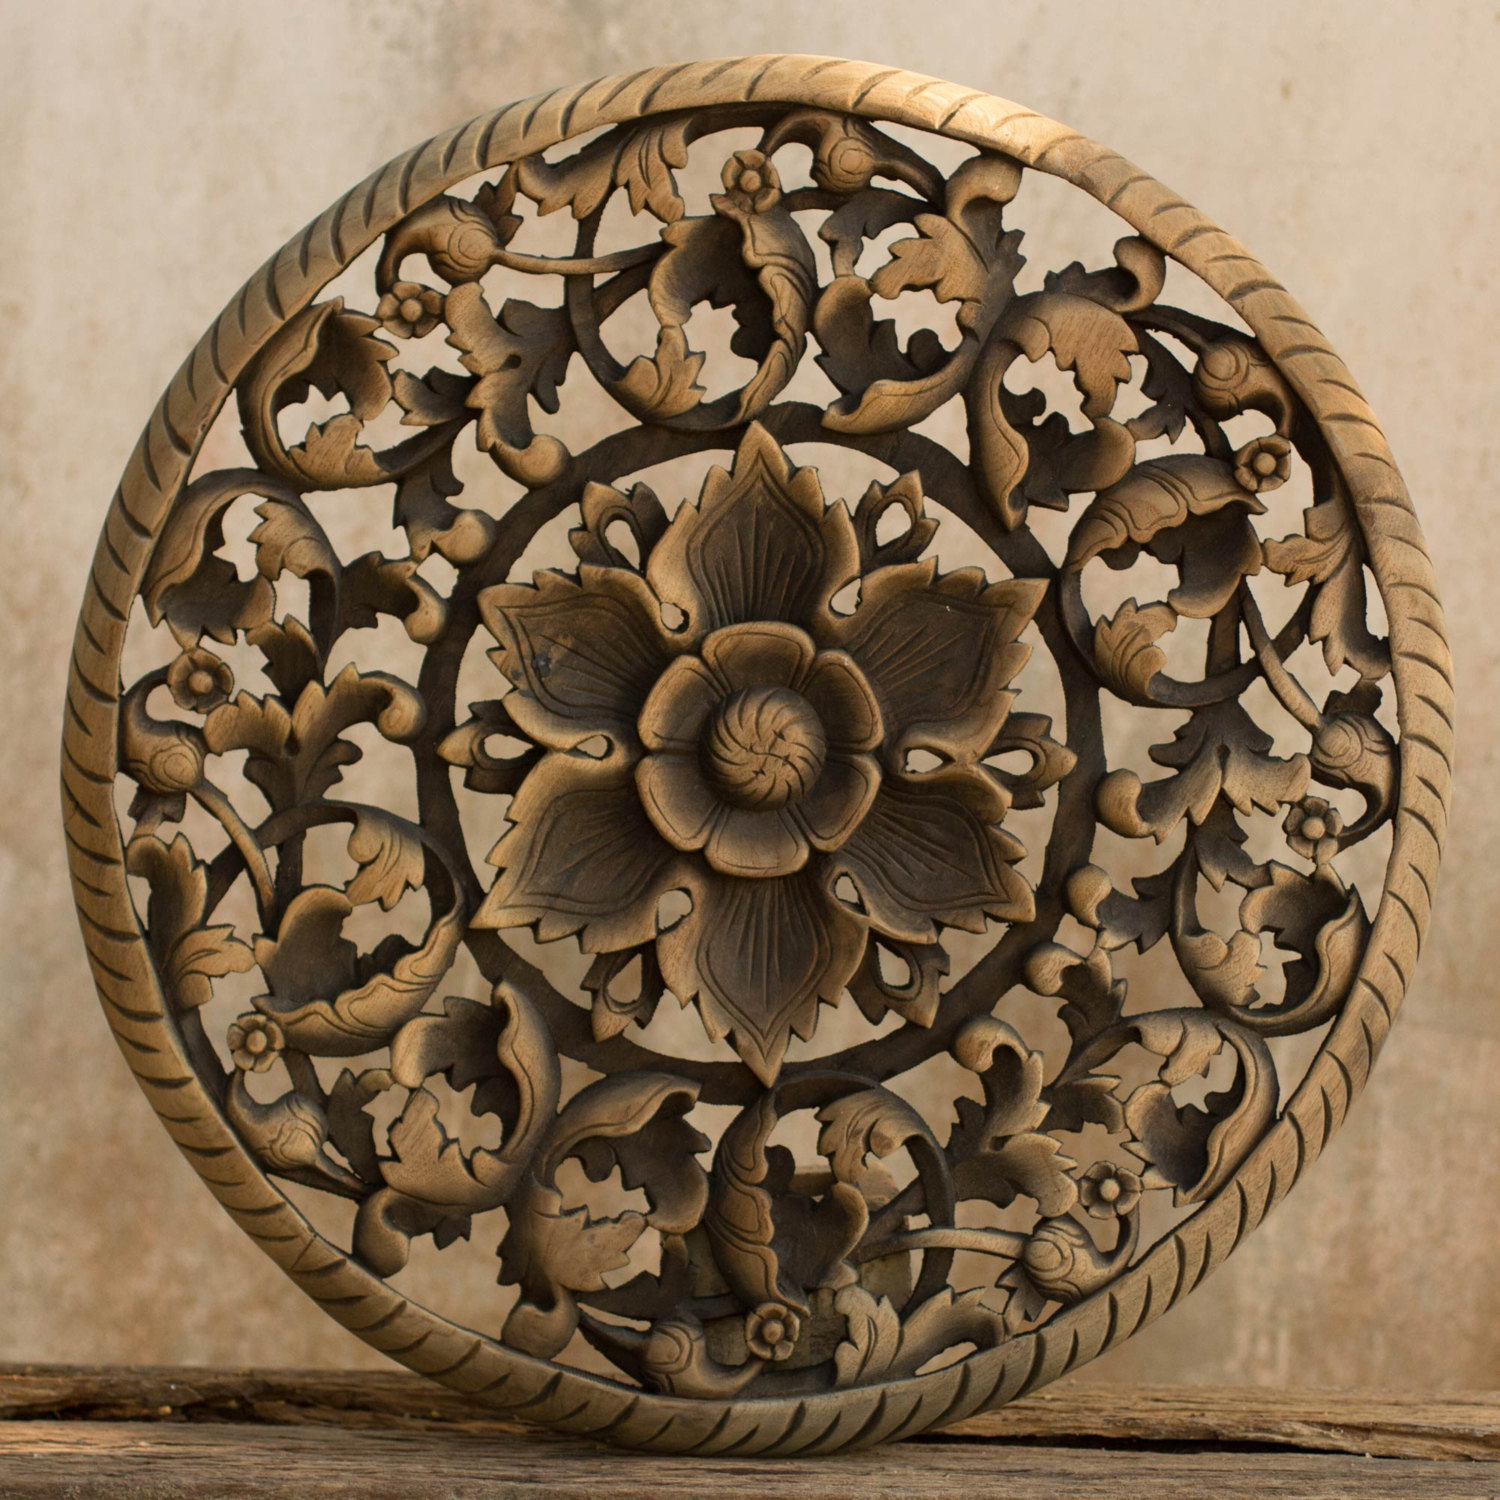 Carved Wood Wall Hanging Buy Tree Dimensional Floral Wooden Wall Hanging Online